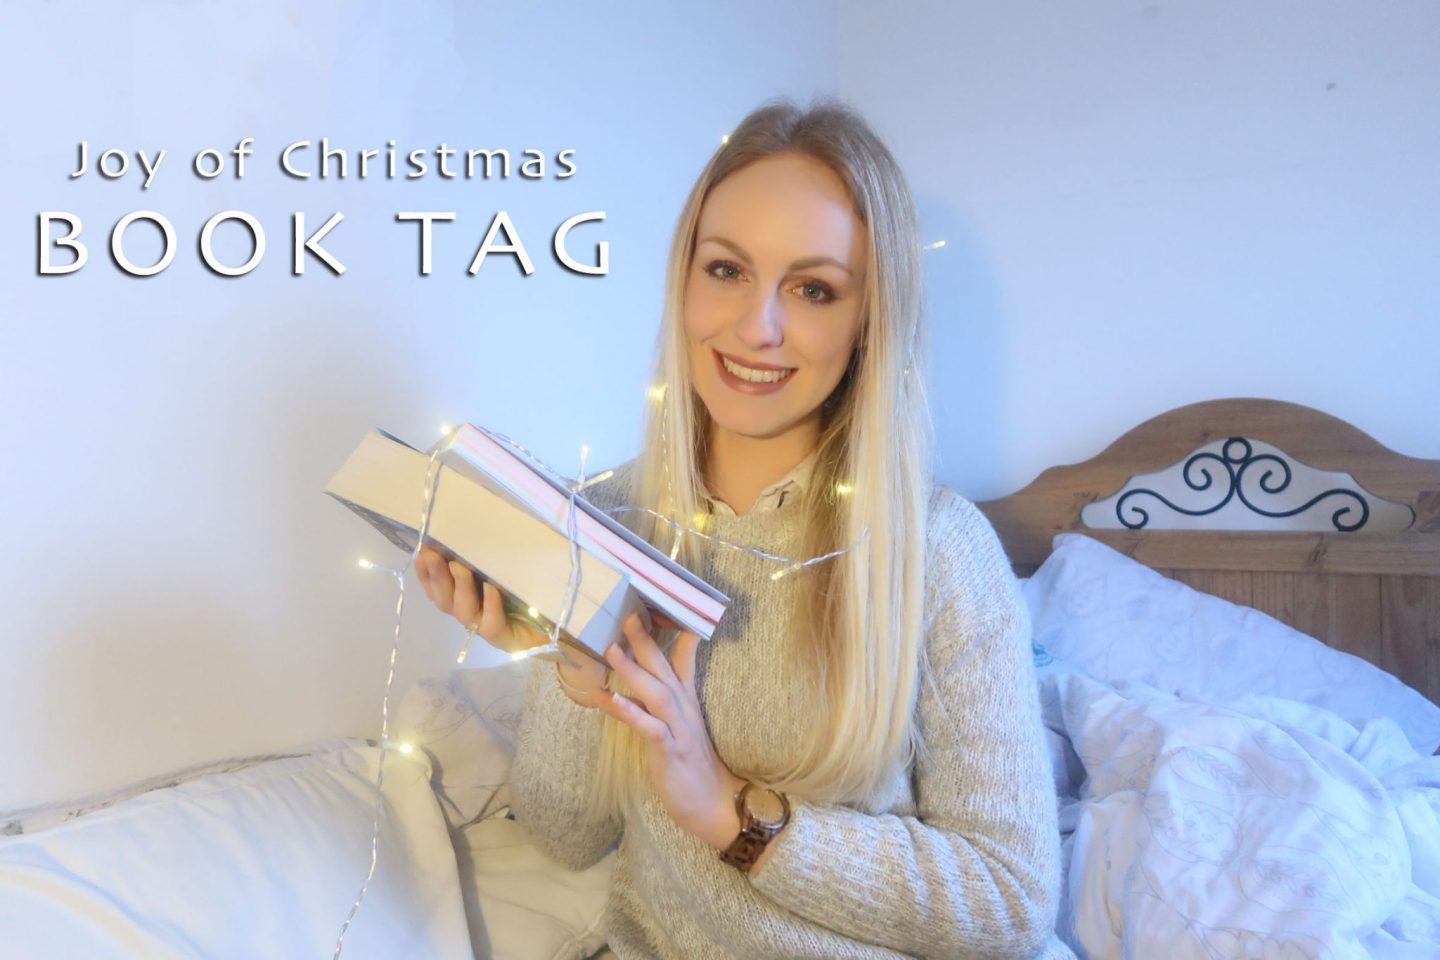 Joy of Christmas Book Tag | Weihnachtsbücher